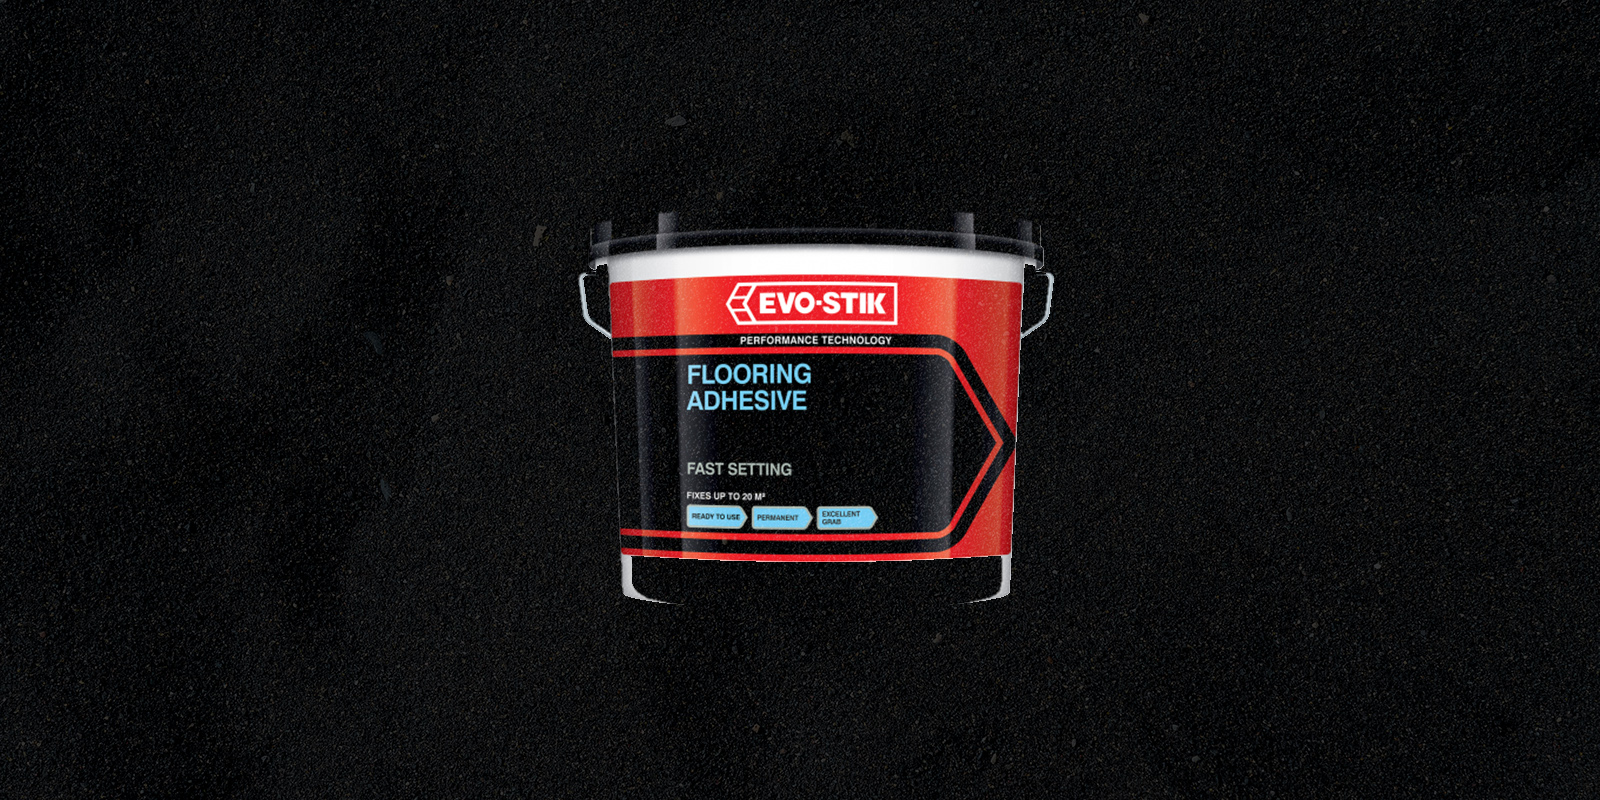 Guide: How To Use Evo-Stik Flooring Adhesive